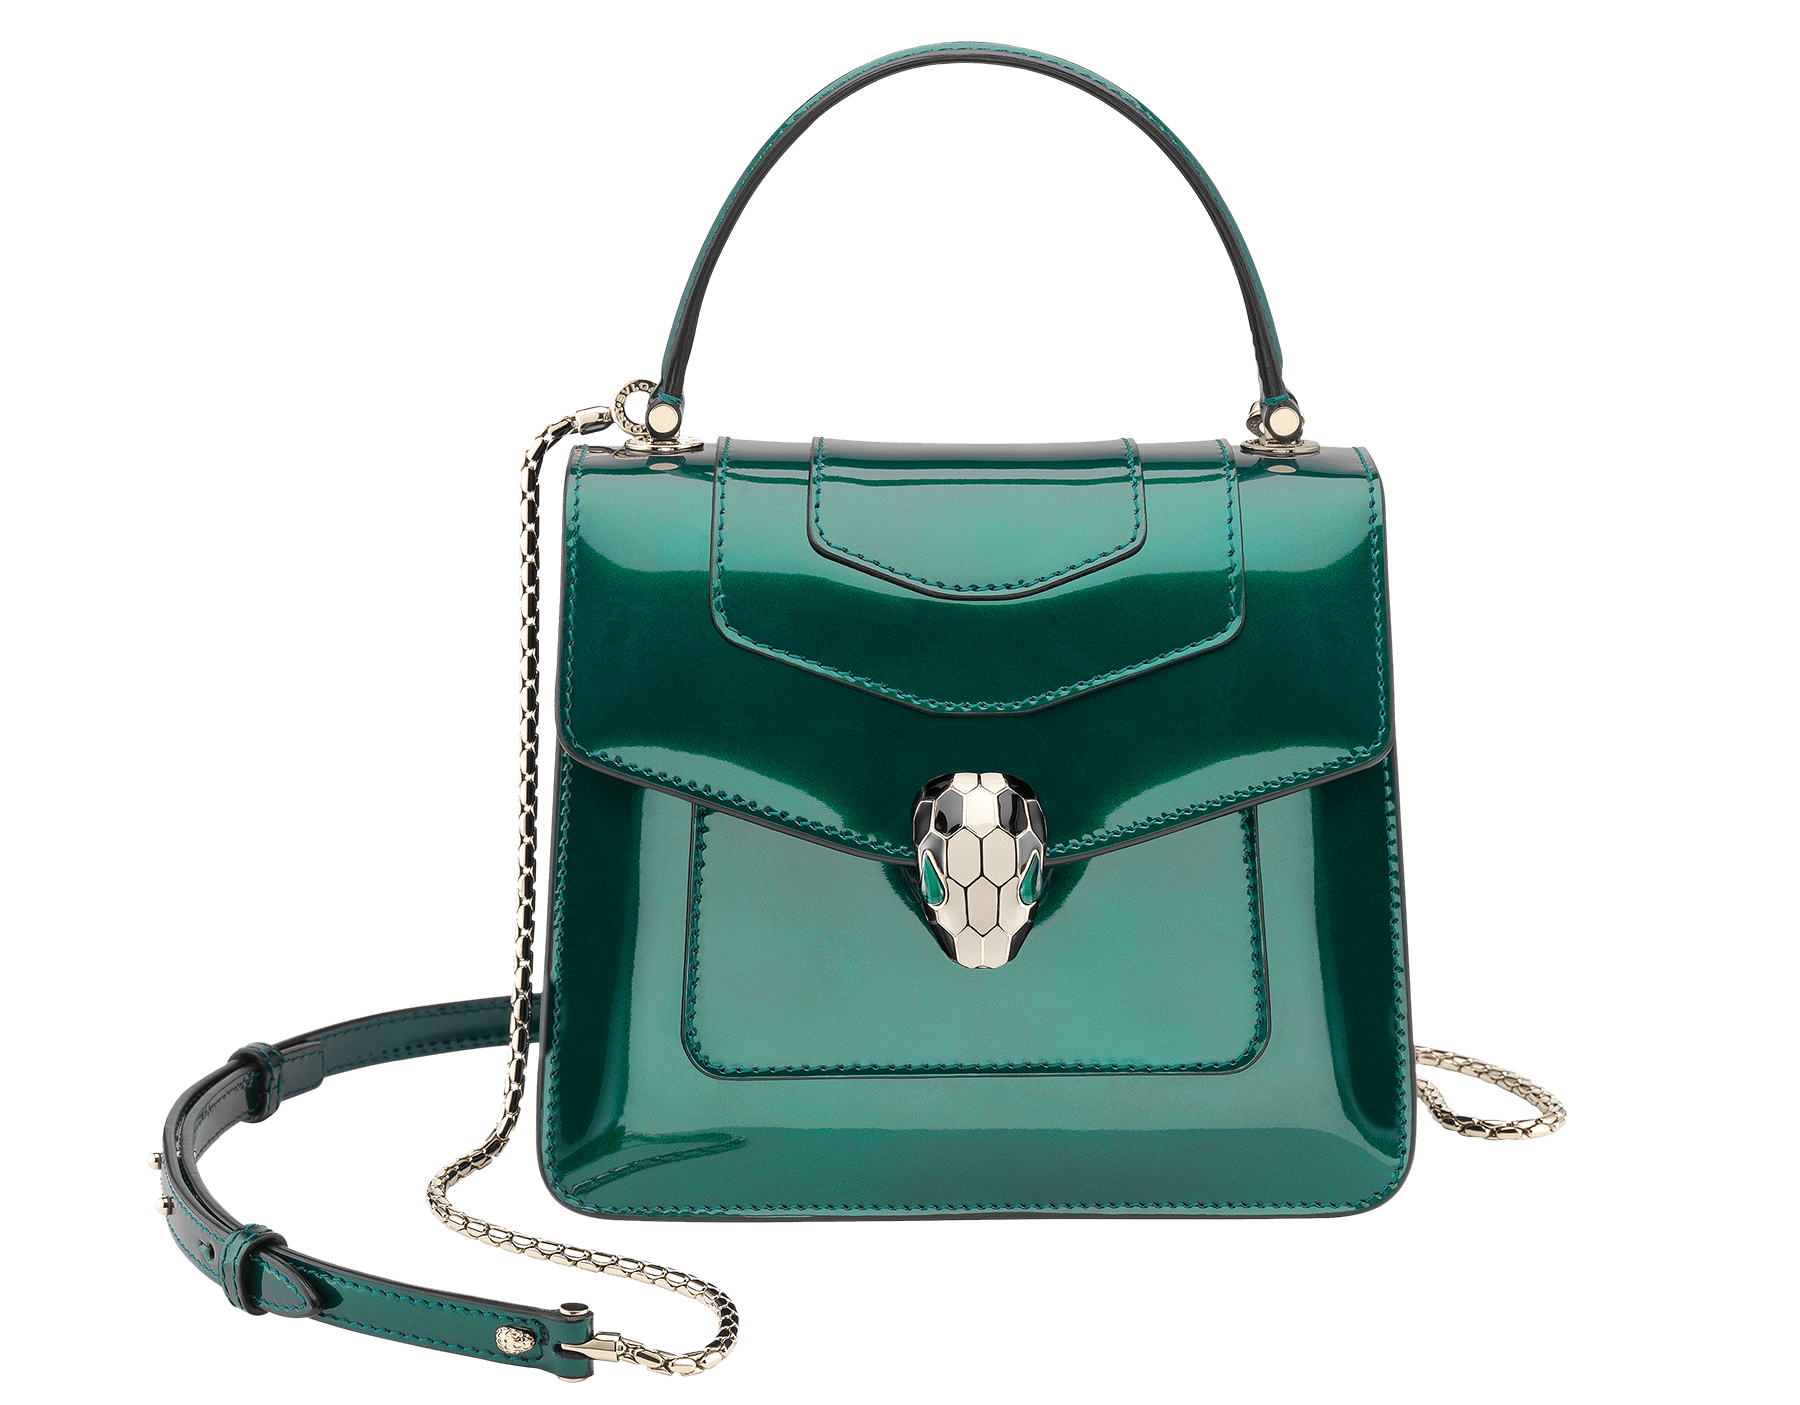 Flap cover bag Serpenti Forever in forest emerald brushed metallic calf leather. Brass light gold plated hardware and snake head closure in black and white enamel with eyes in green malachite. 752-BMCLb image 1